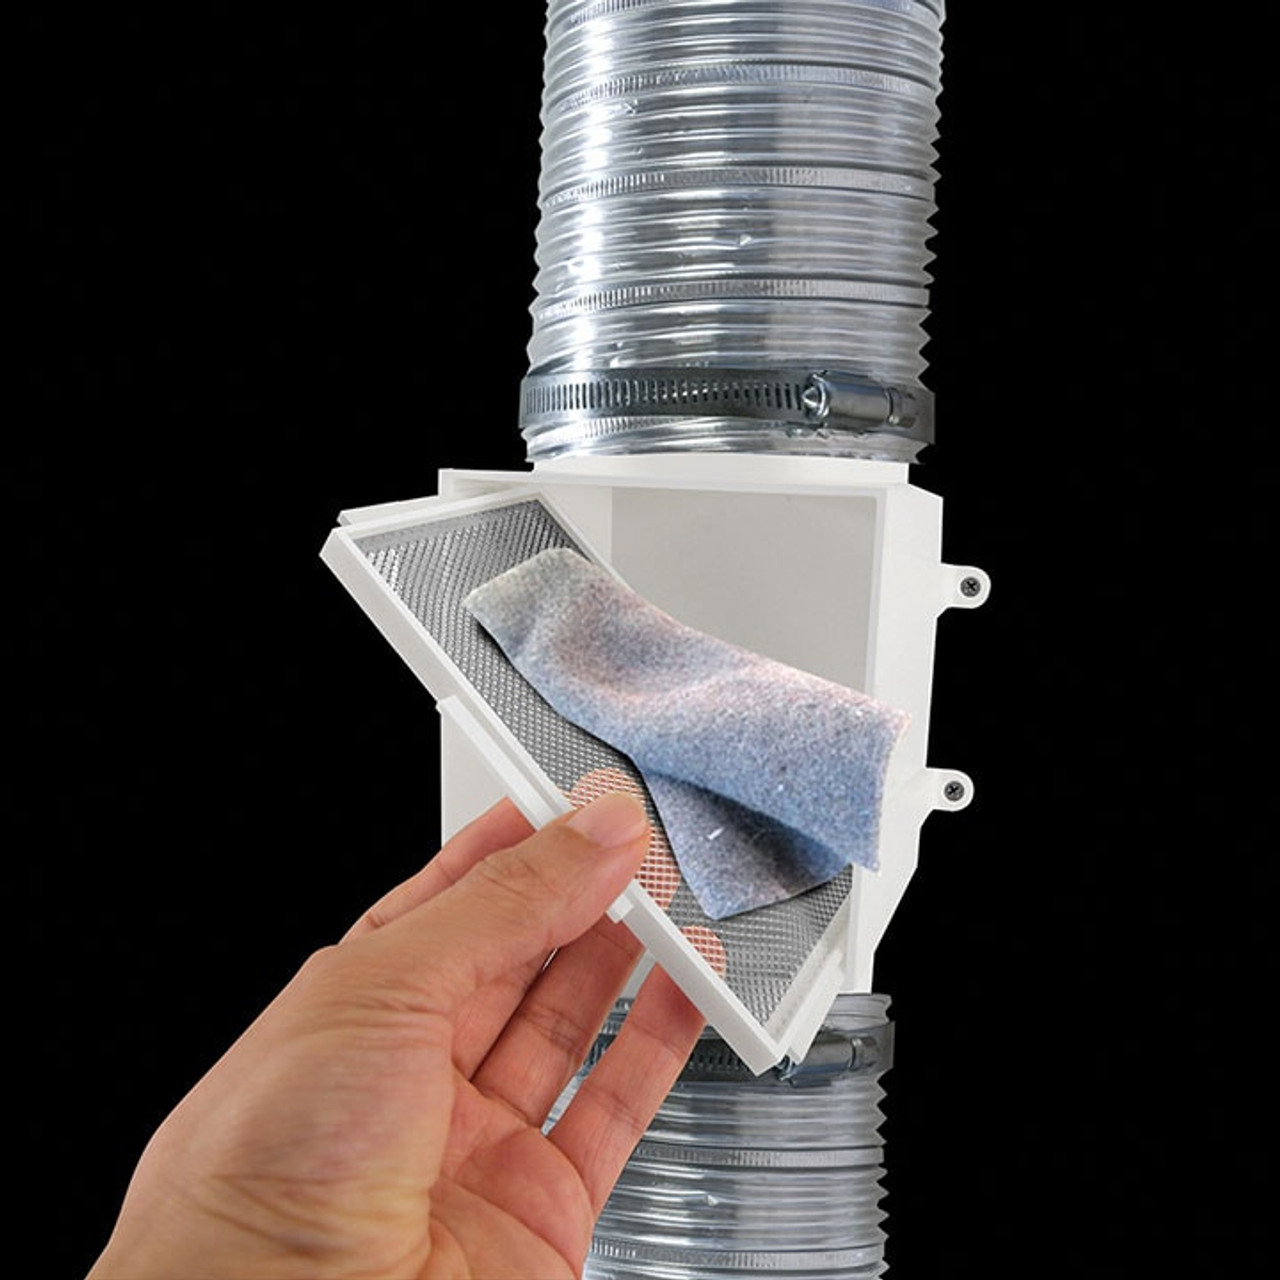 PCLT4WZW Proclean Dryer Duct Lint Trap - How to clean